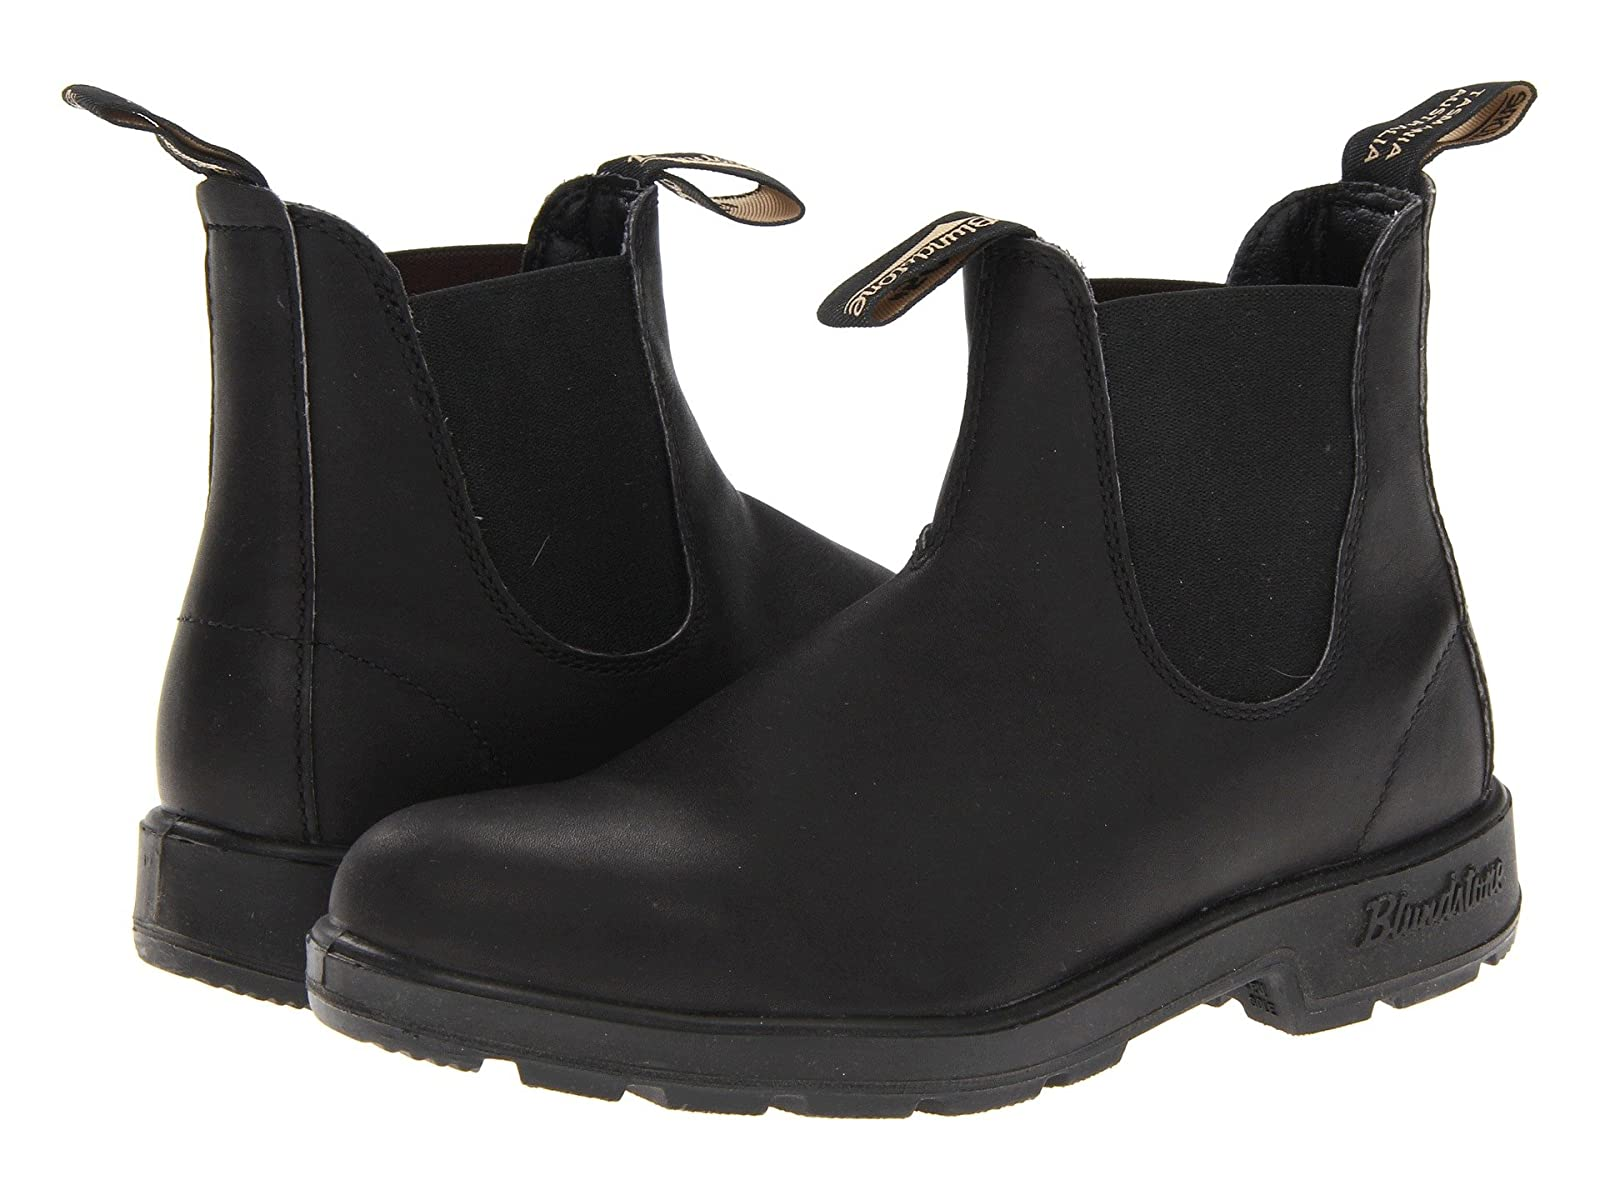 Blundstone BL510Selling fashionable and eye-catching shoes